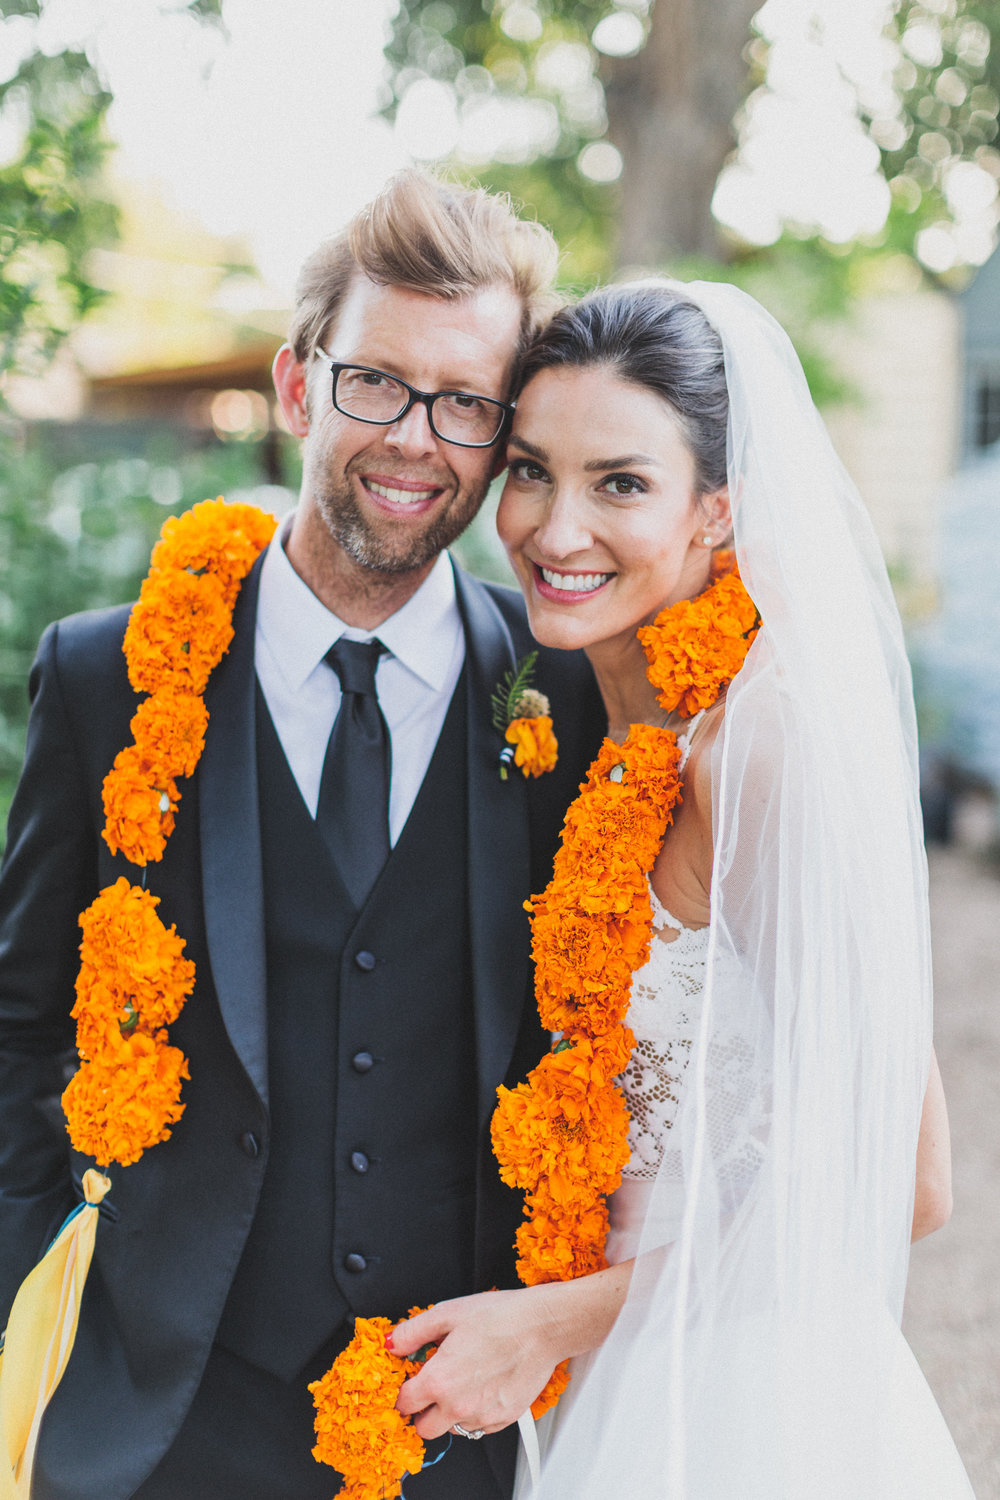 A Vibrant, Tropical Austin Wedding - The Overwhelmed Bride Wedding Blog  Ideas Inspiration